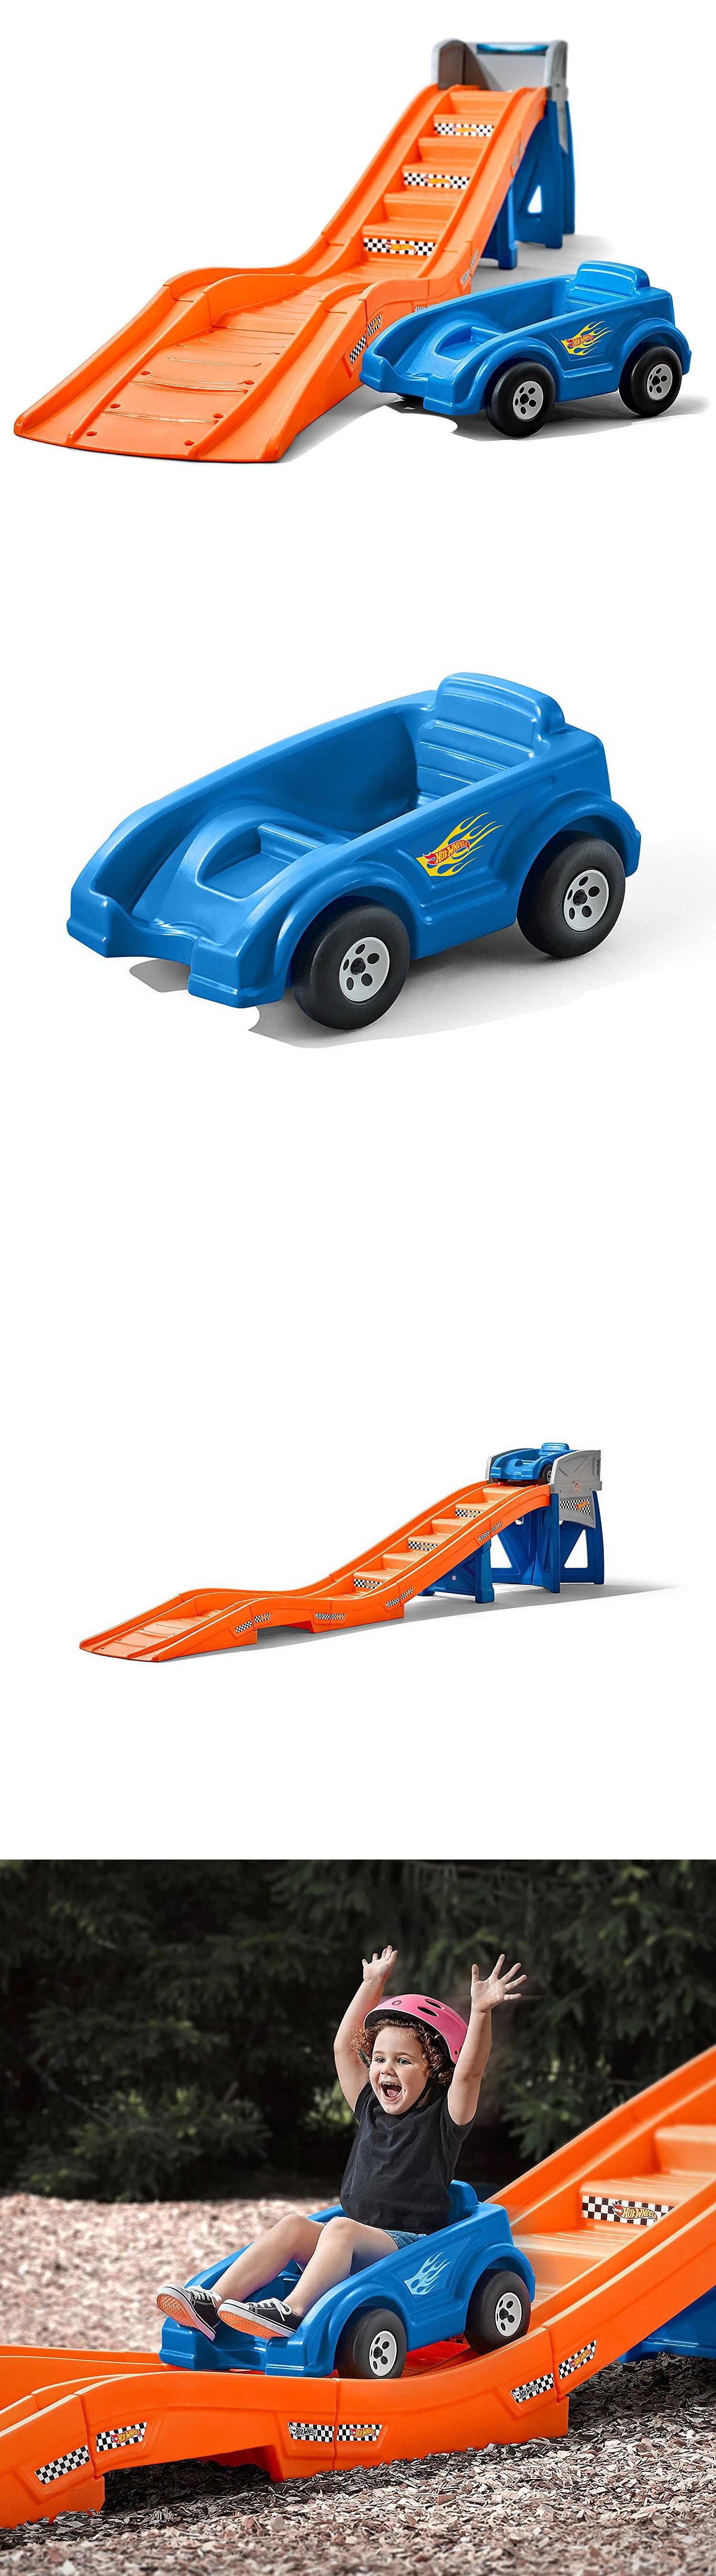 Step 2 Step2 Hot Wheels Extreme Thrill Coaster Ride Toy Kids Gift